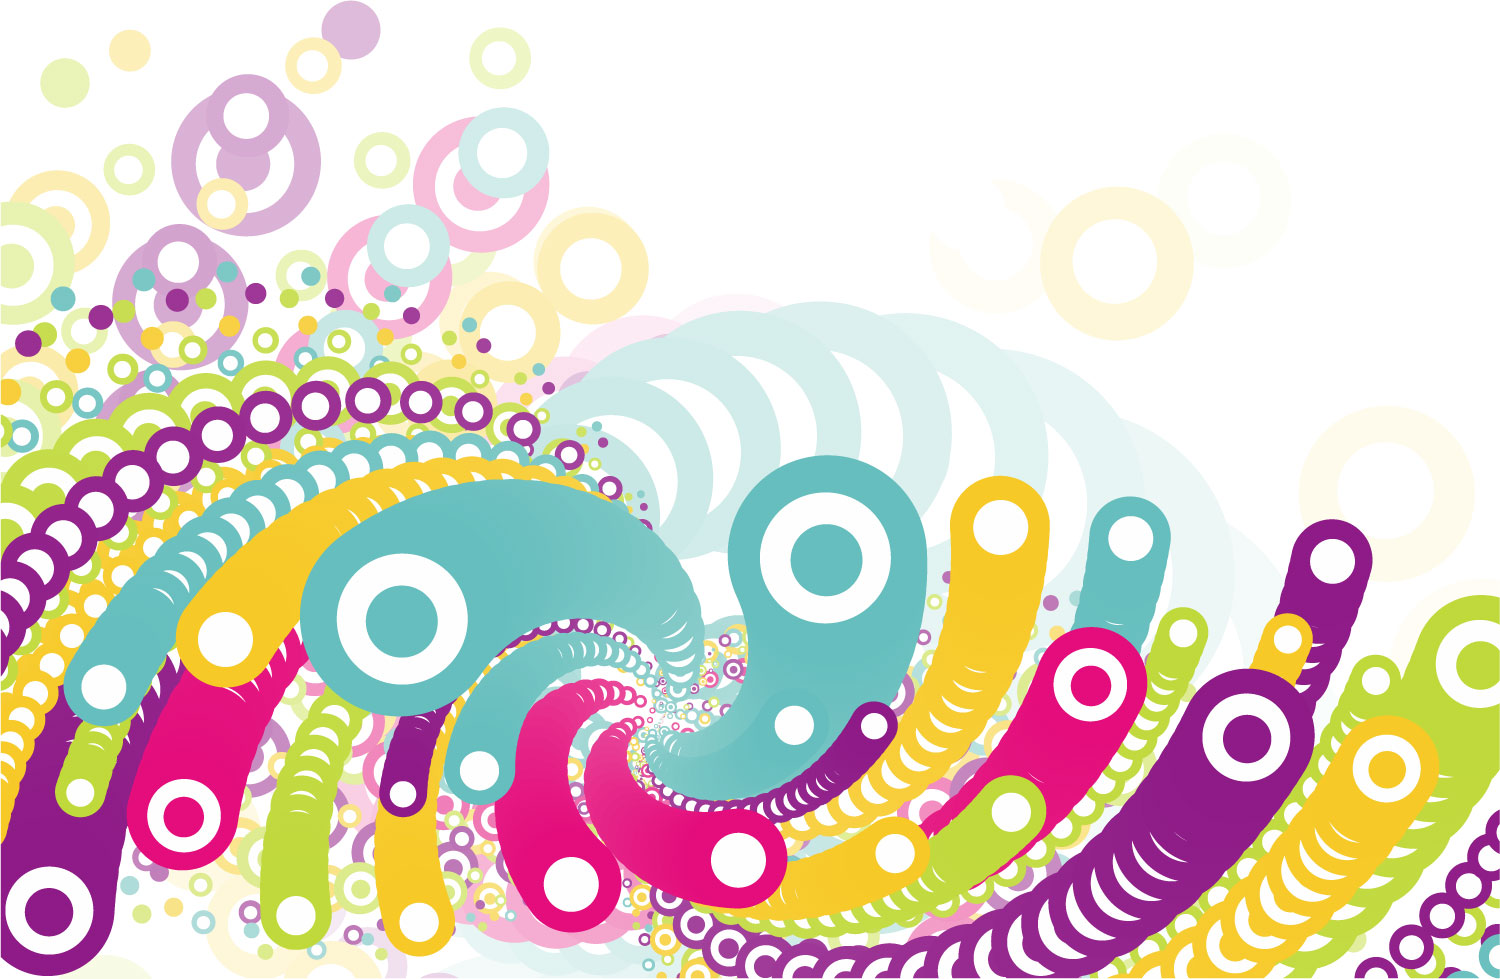 colorful circle vector graphic - photo #35